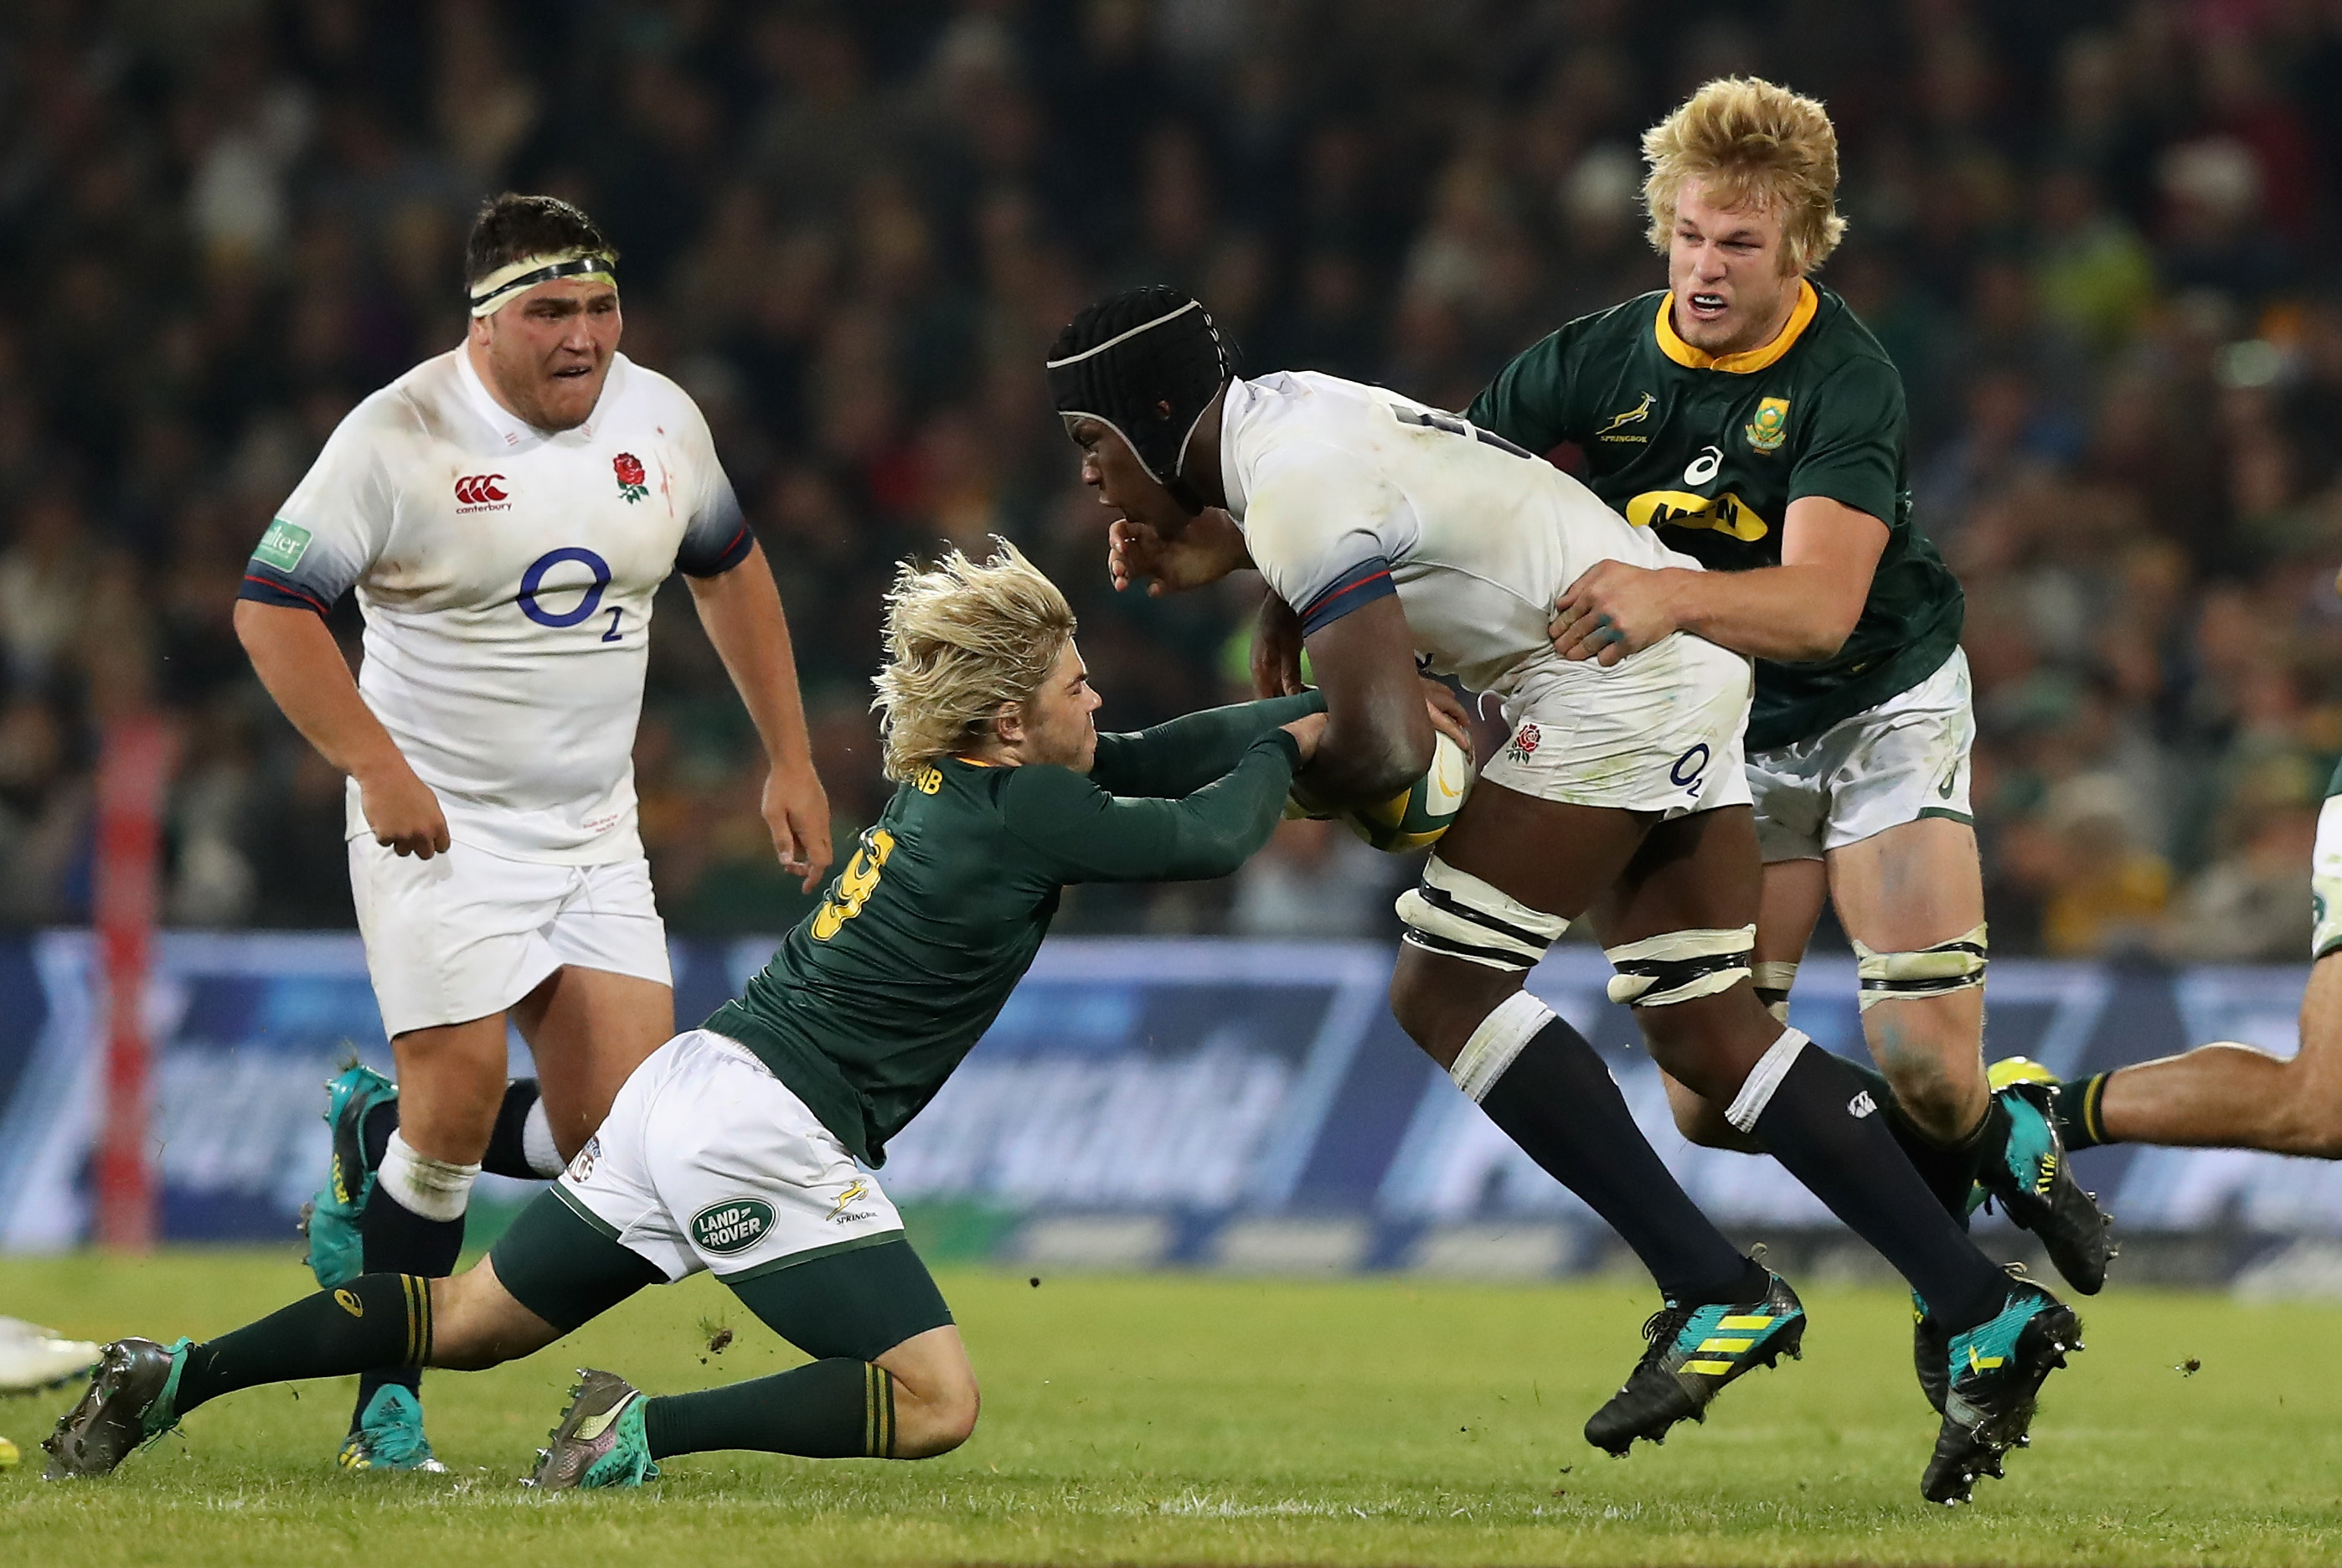 England loss 'like a horror movie' | Otago Daily Times Online News